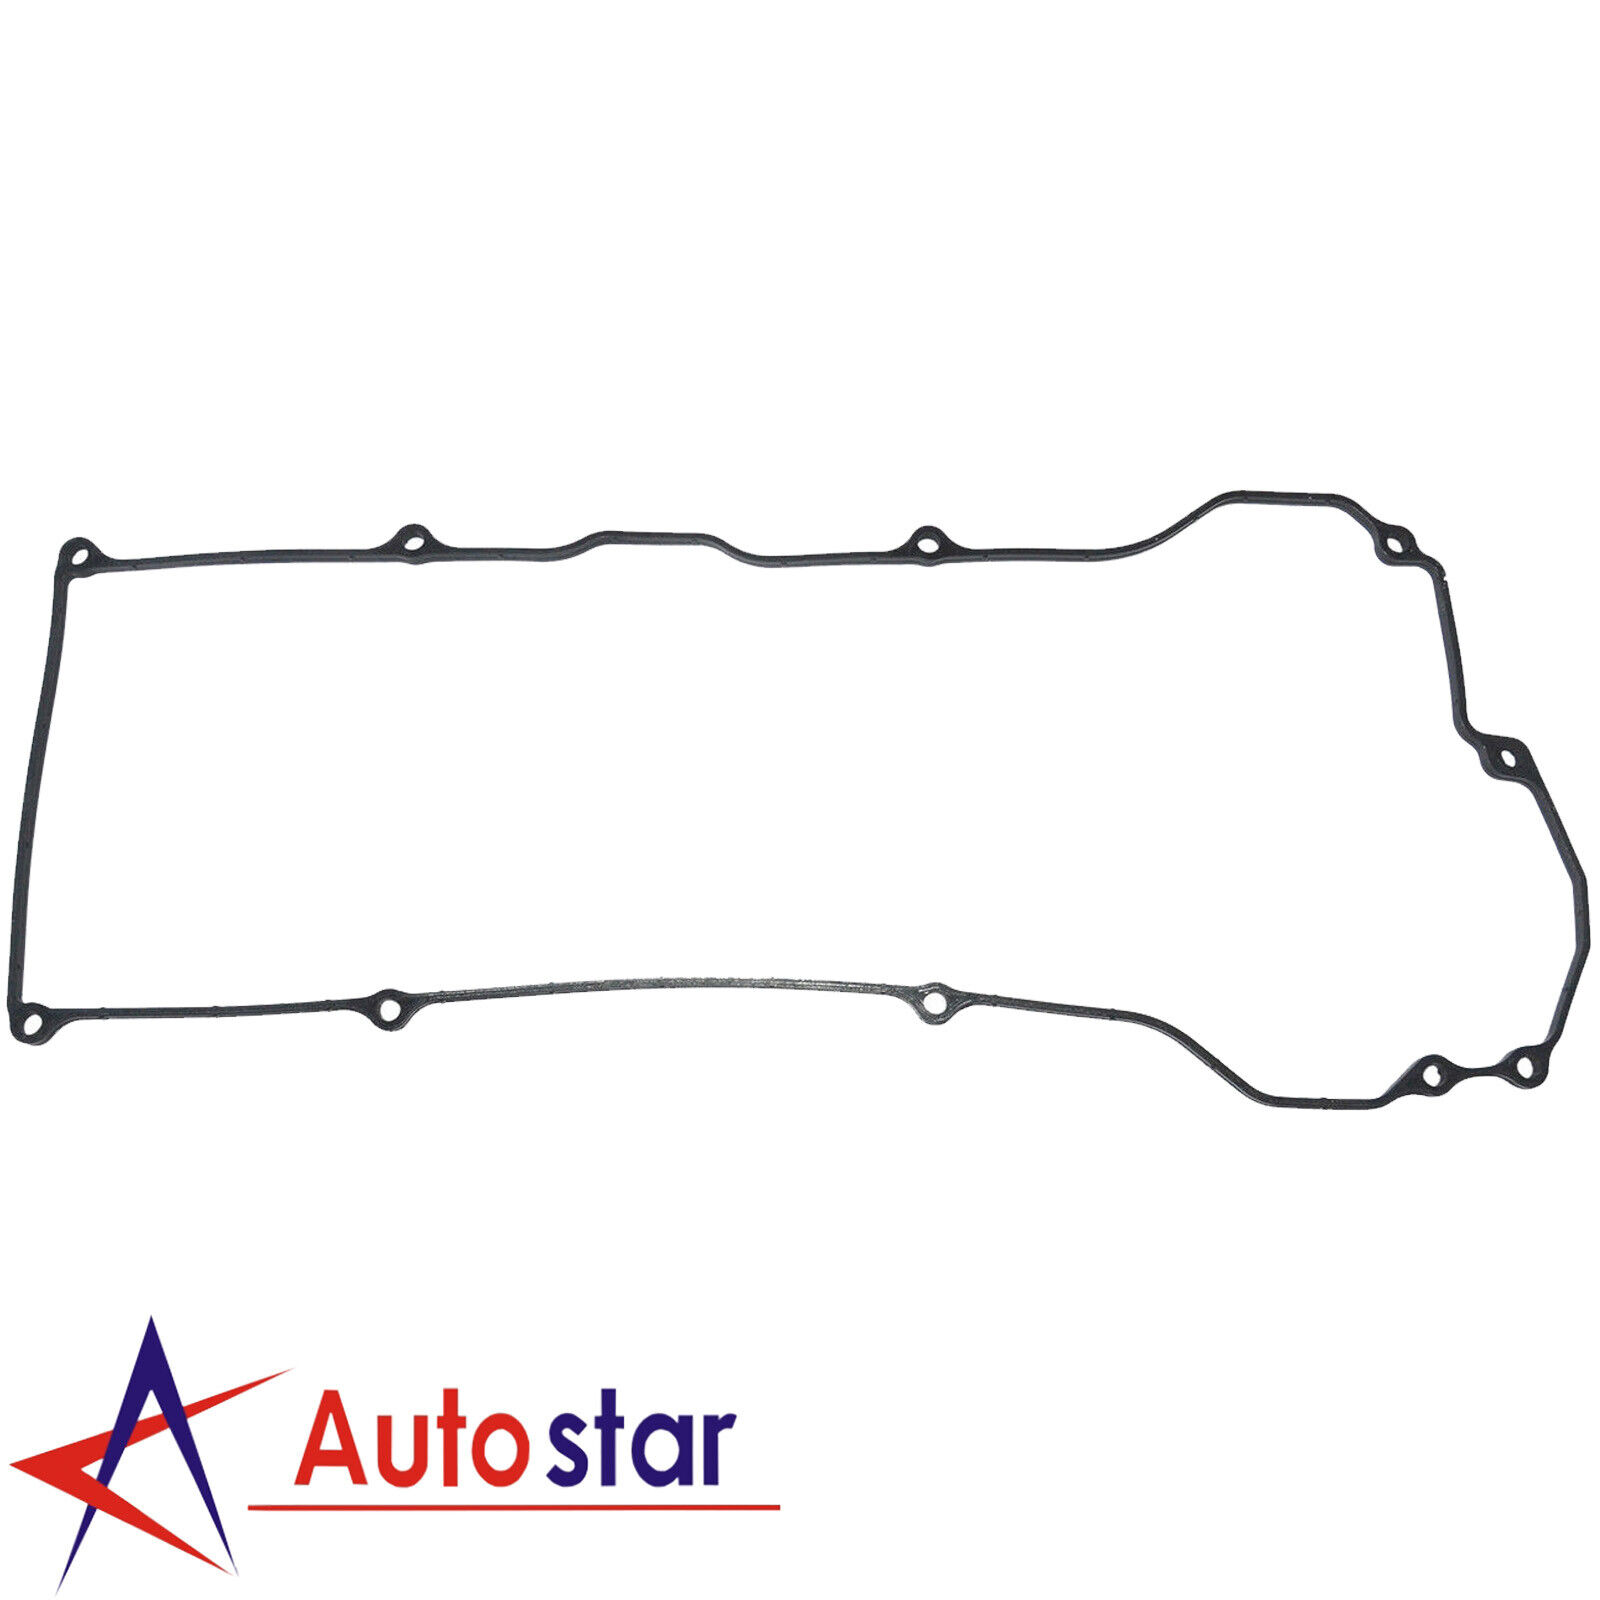 Engine Valve Cover For Nissan Sentra Gxe Xe Ca